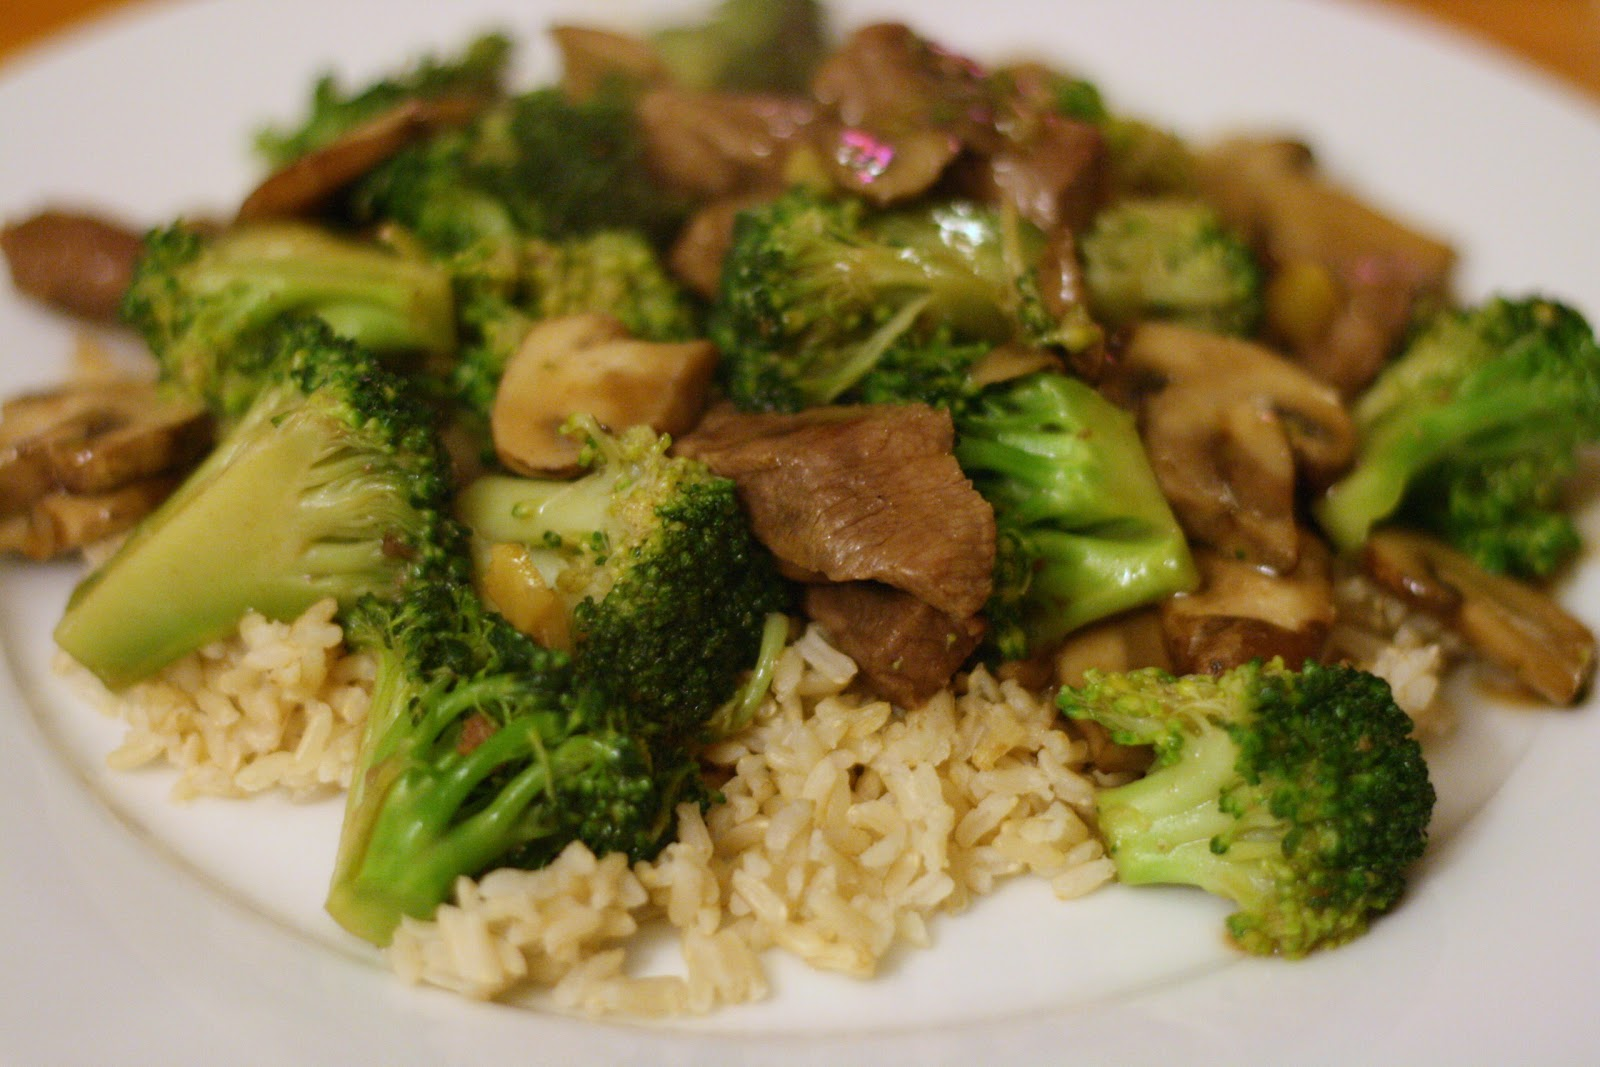 Laine's Recipe Box: Beef, Mushroom, and Broccoli Stir-Fry